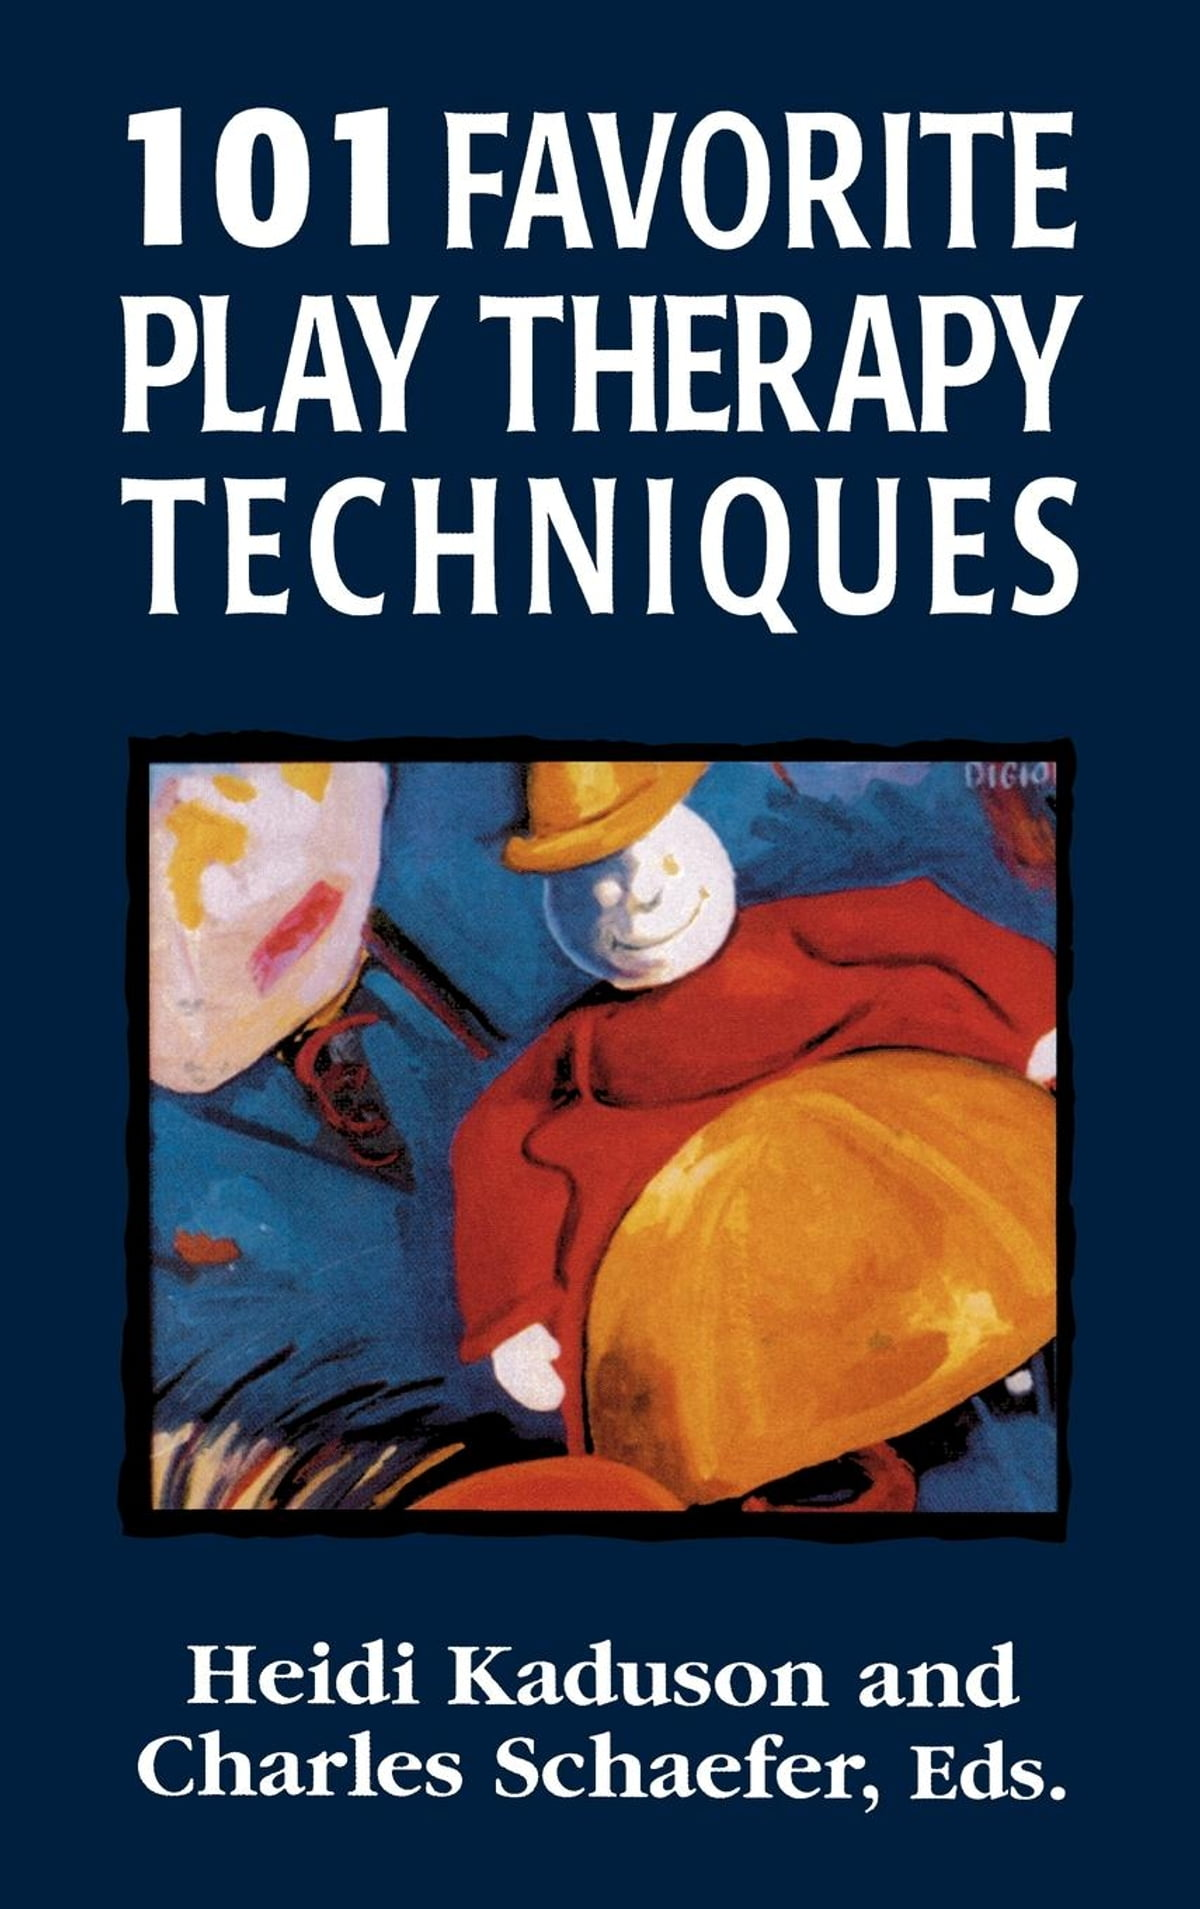 101 Favorite Play Therapy Techniques eBook by - 9780742599949 | Rakuten Kobo